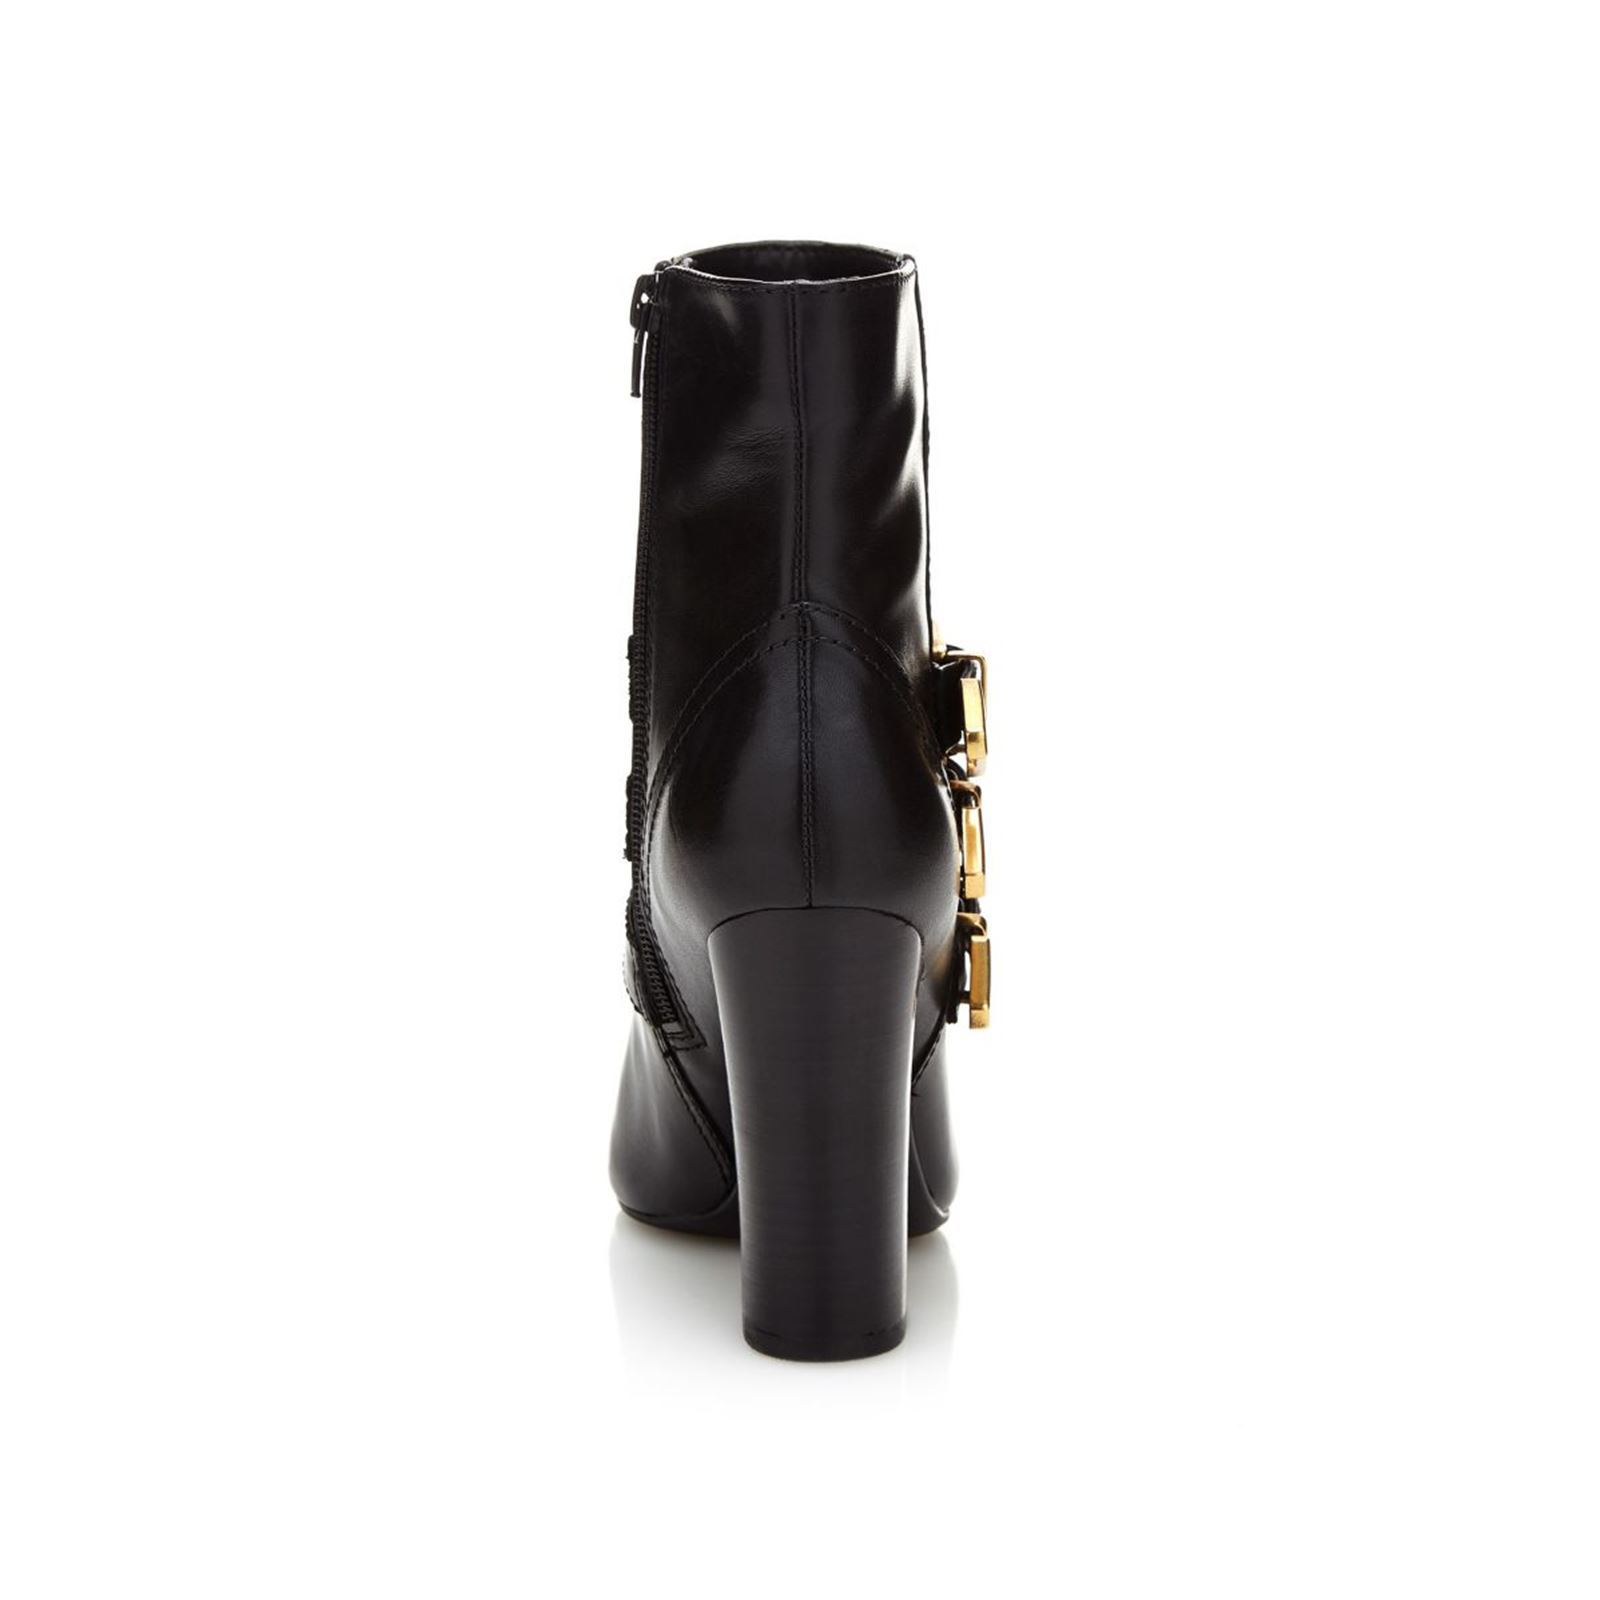 Guess BOTTINES LULUBY À BOUCLES Noir Sp3wdnlI